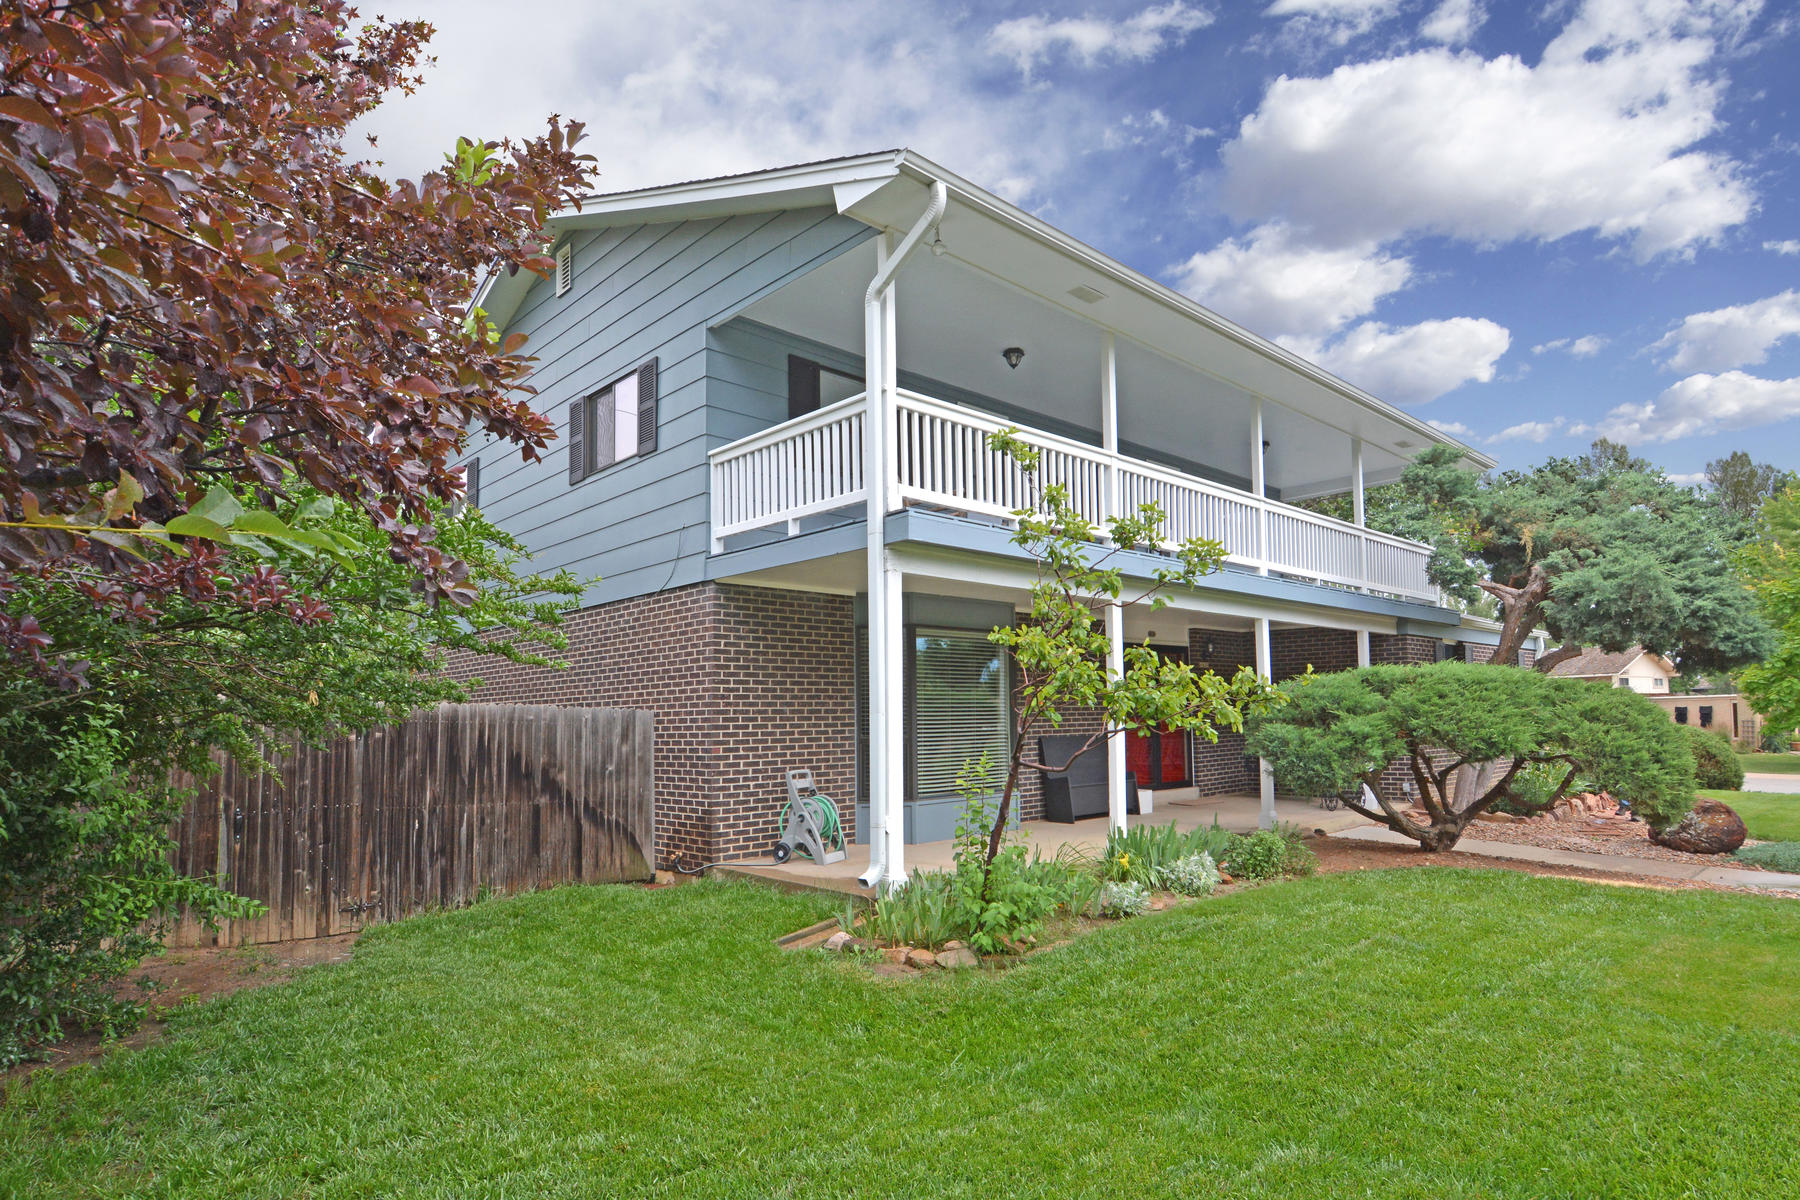 Single Family Home for Active at Beaufully Maintained Two-story 4628 Tanglewood Trl Boulder, Colorado 80301 United States